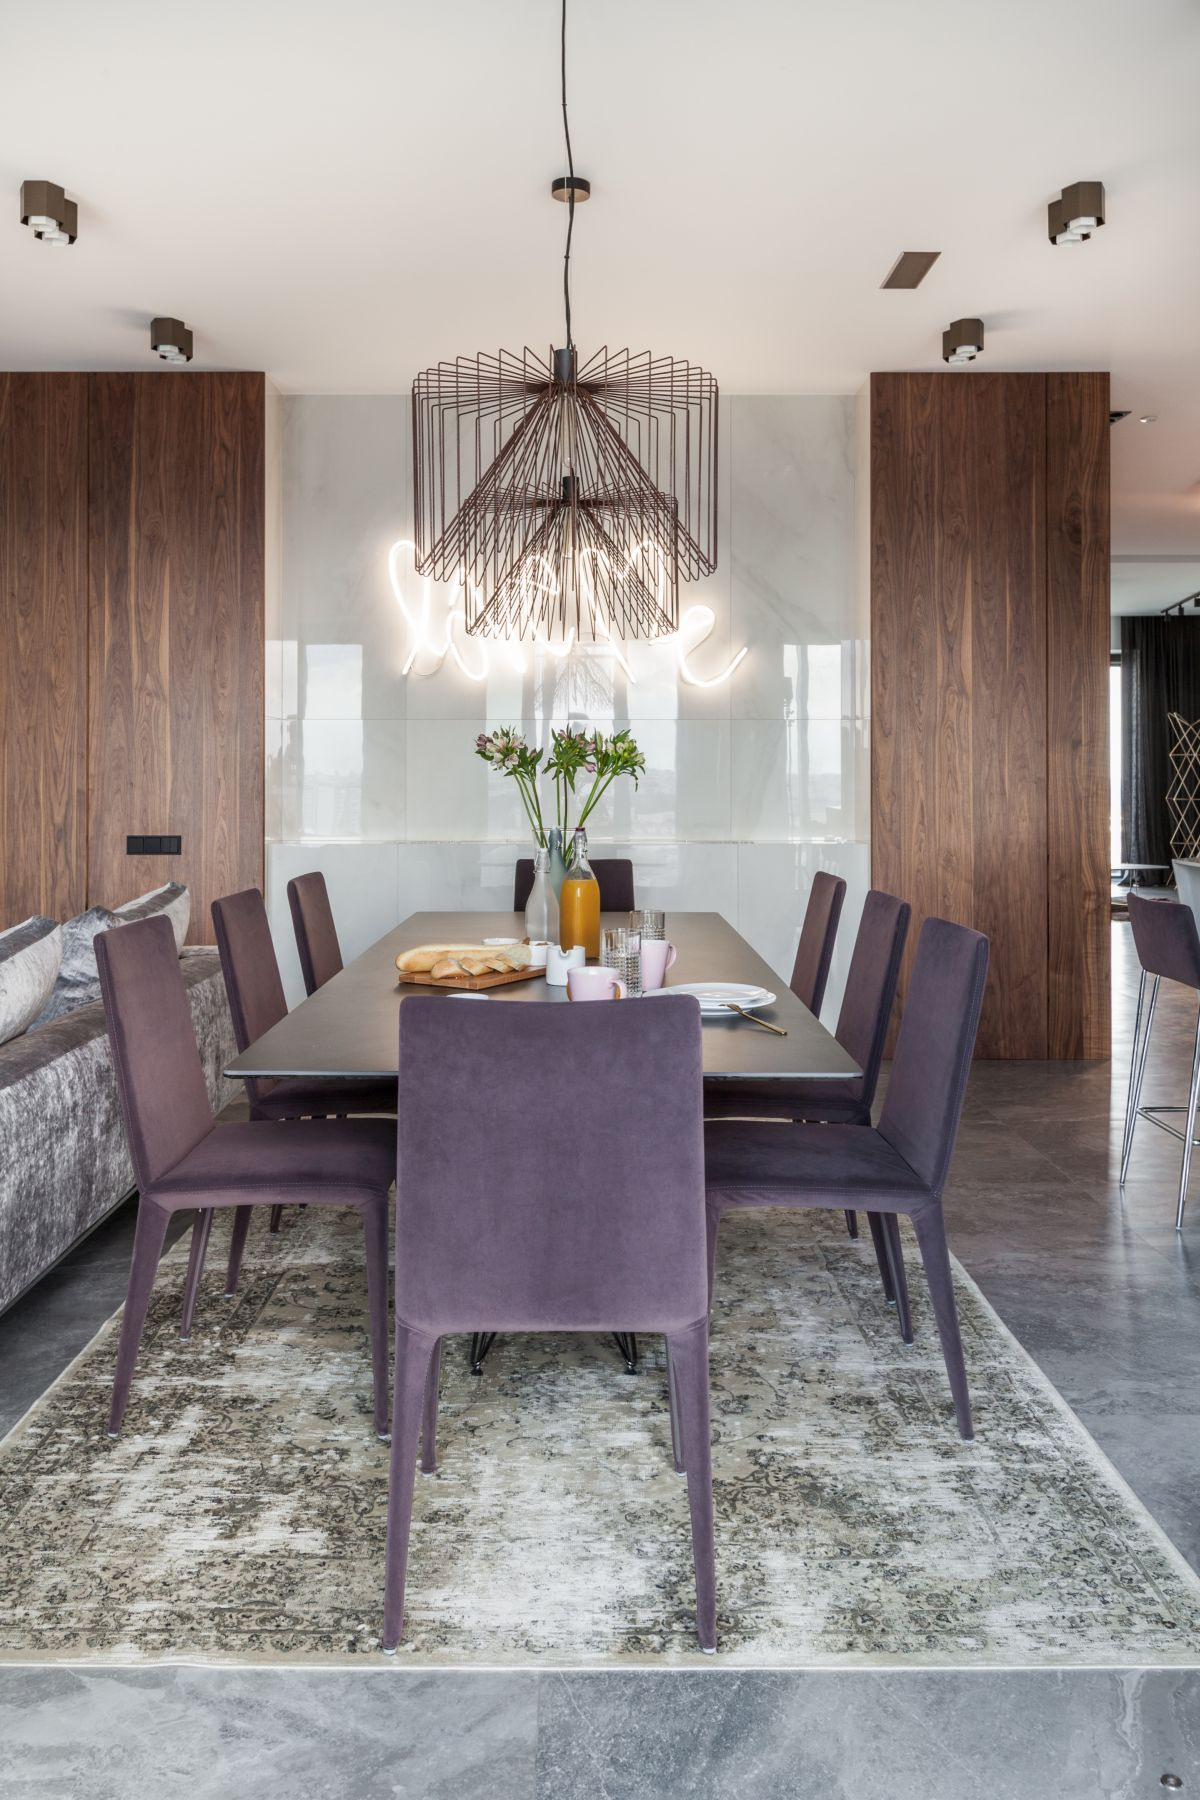 The dining area is framed by a soft and velvety area rug and features beautiful purple chairs